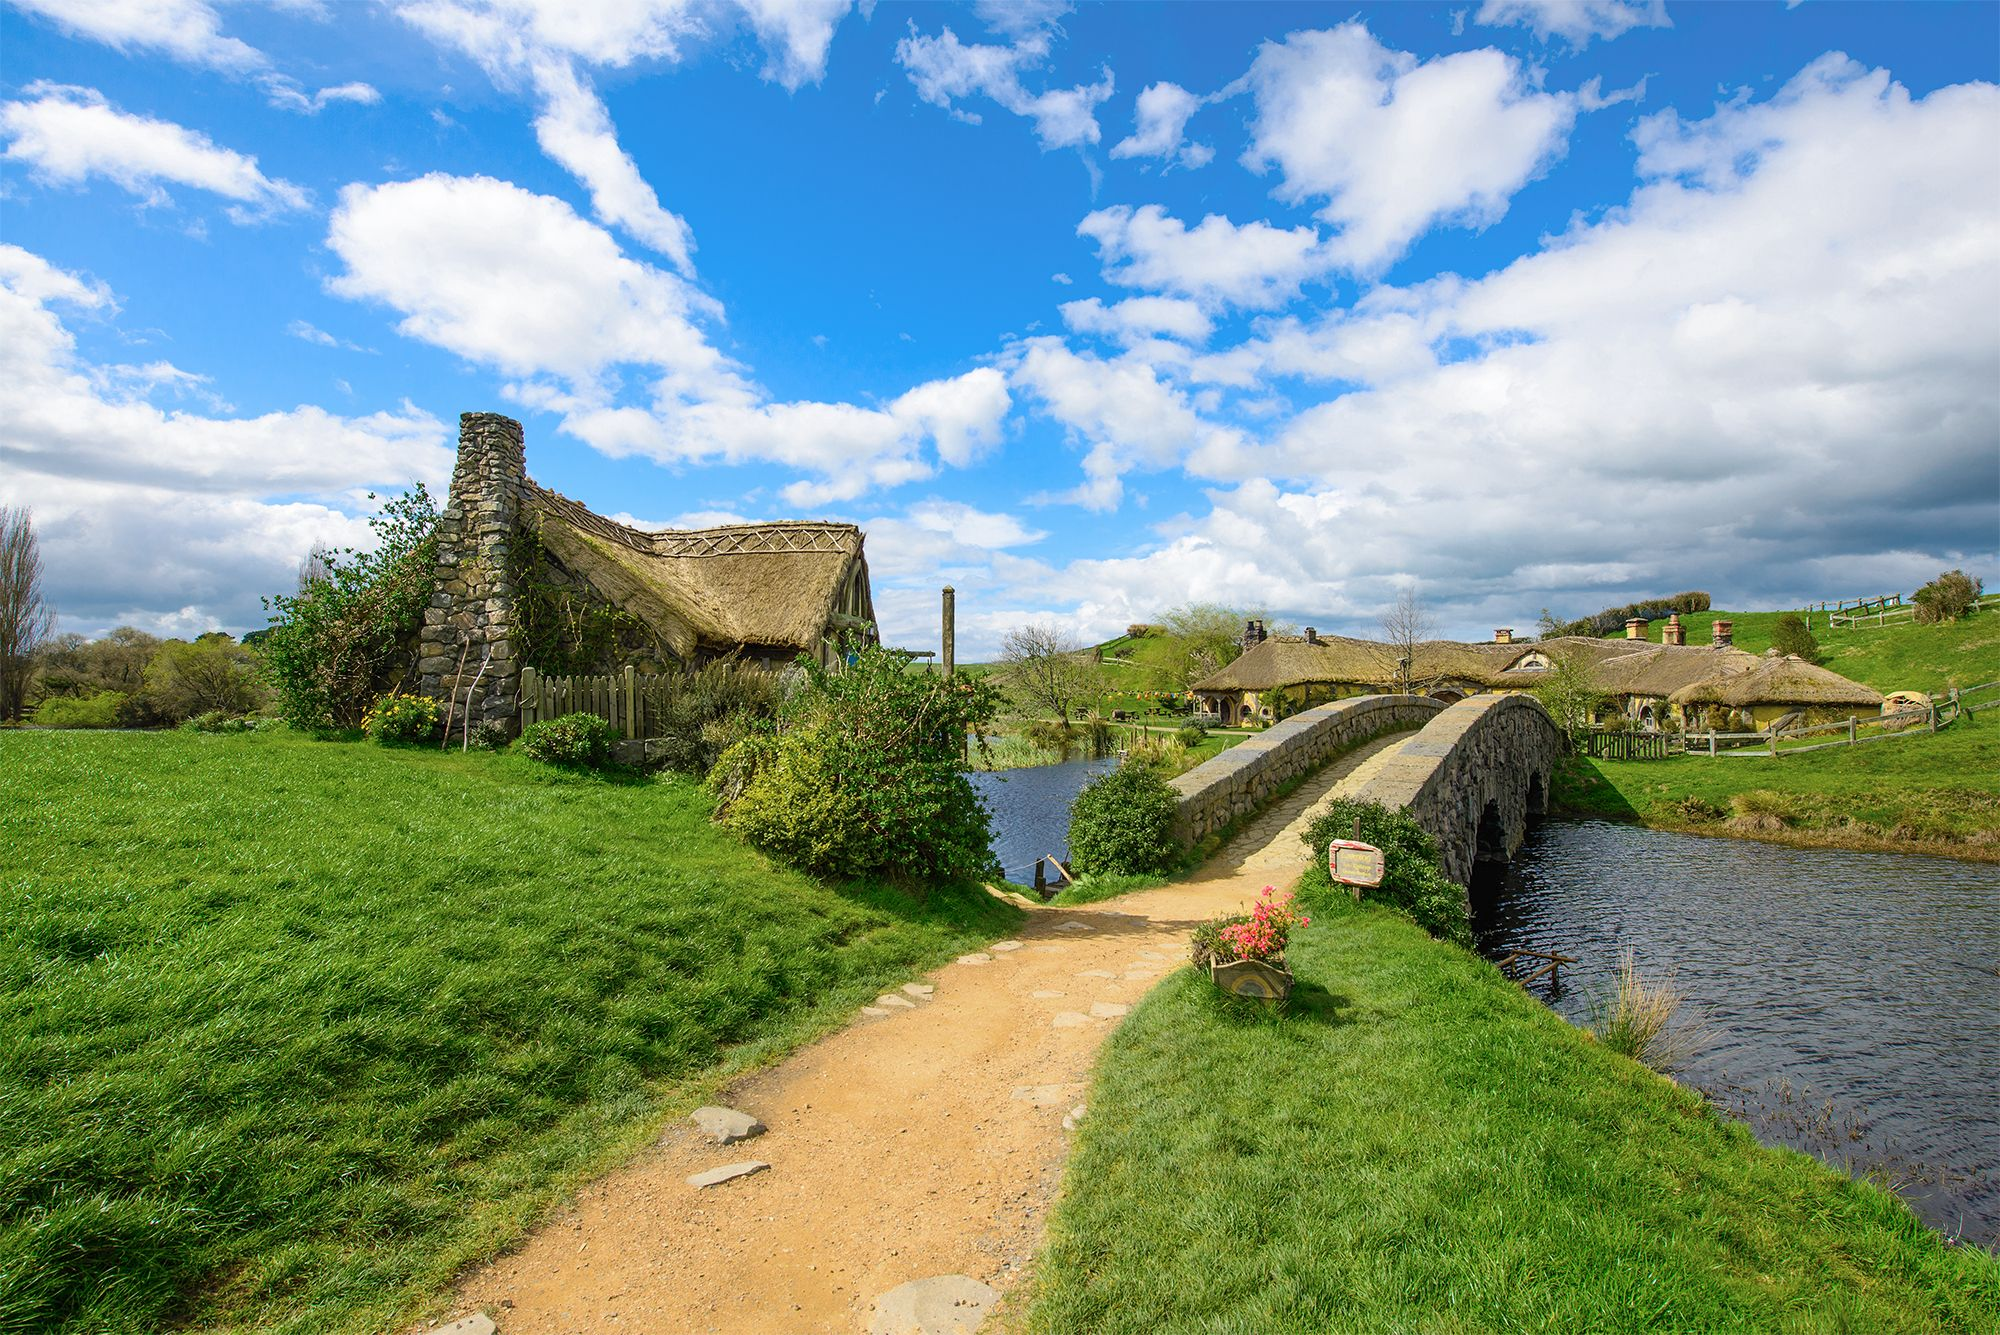 2000x1335 New Zealand Matamata Hobbiton Wallpaper | Gallery Yopriceville ...